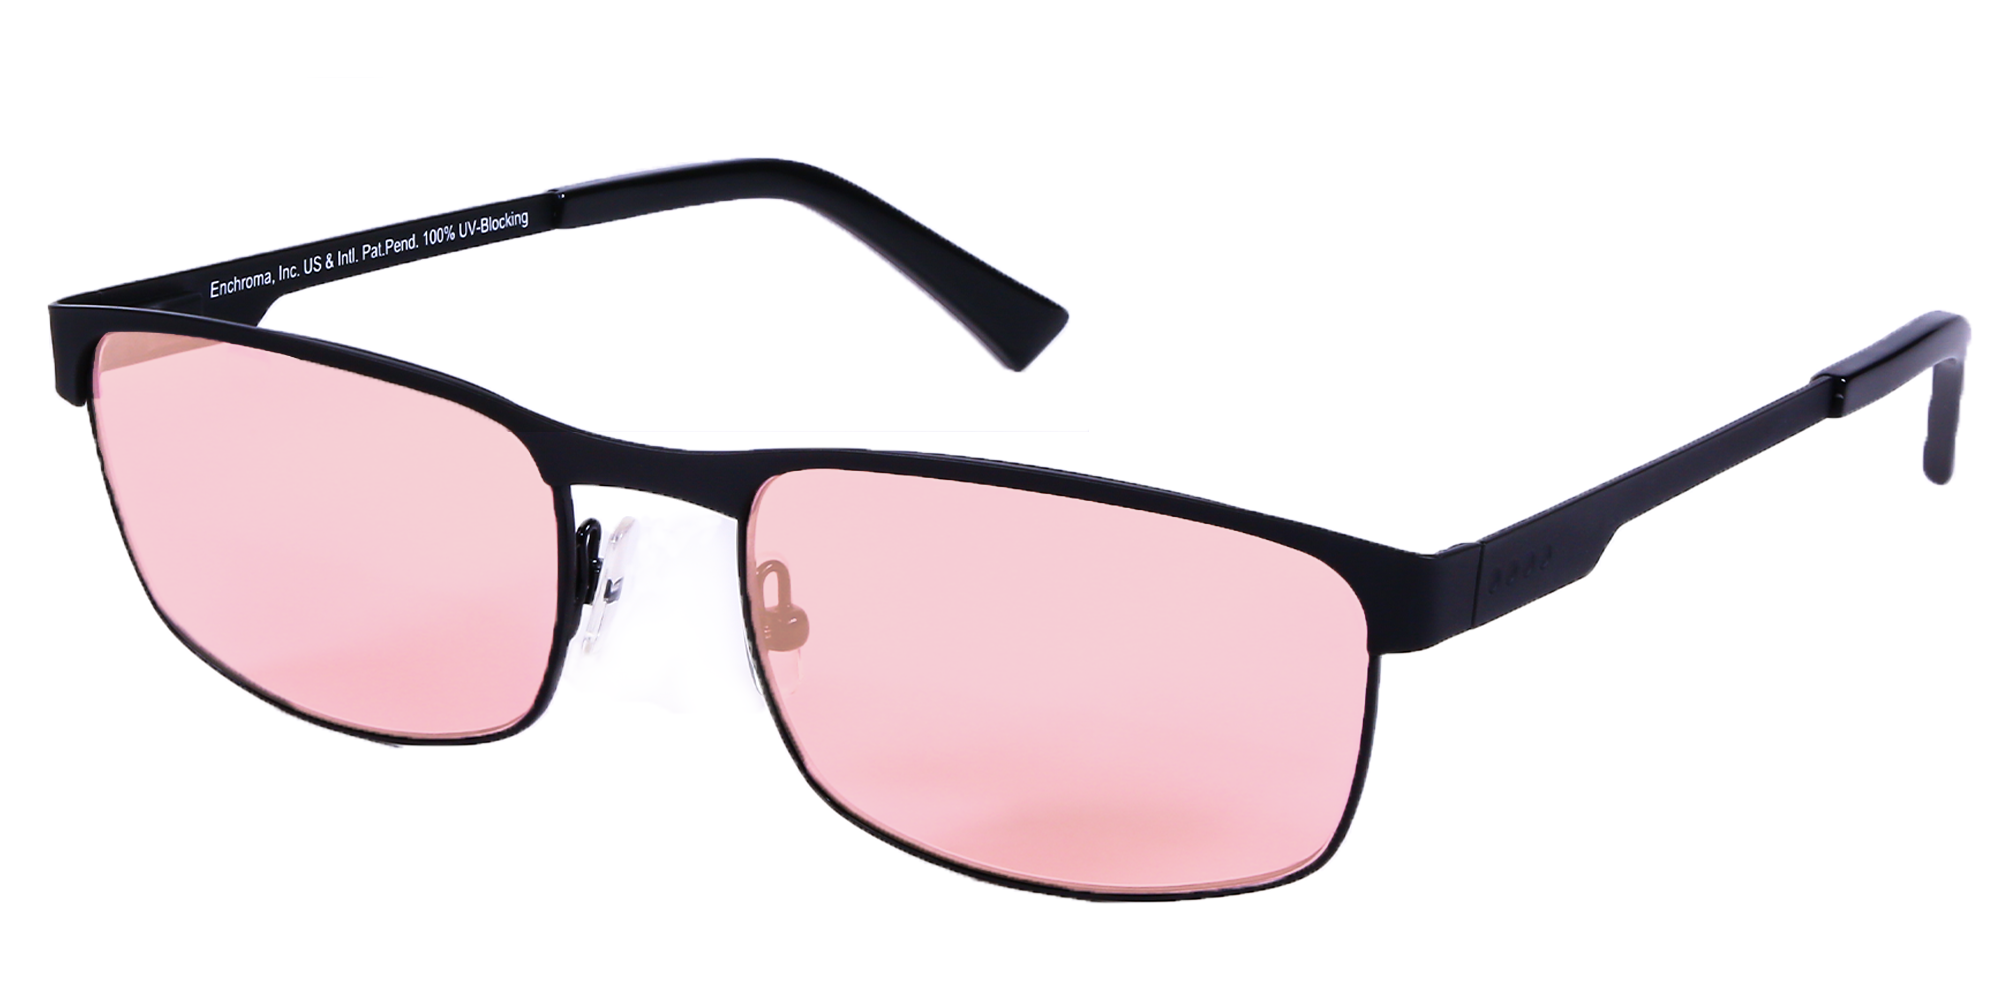 Red Green Color Blind Corrective Glasses for Outdoor and Indoor Use Color  Correction Glasse mimbarschool.com.ng